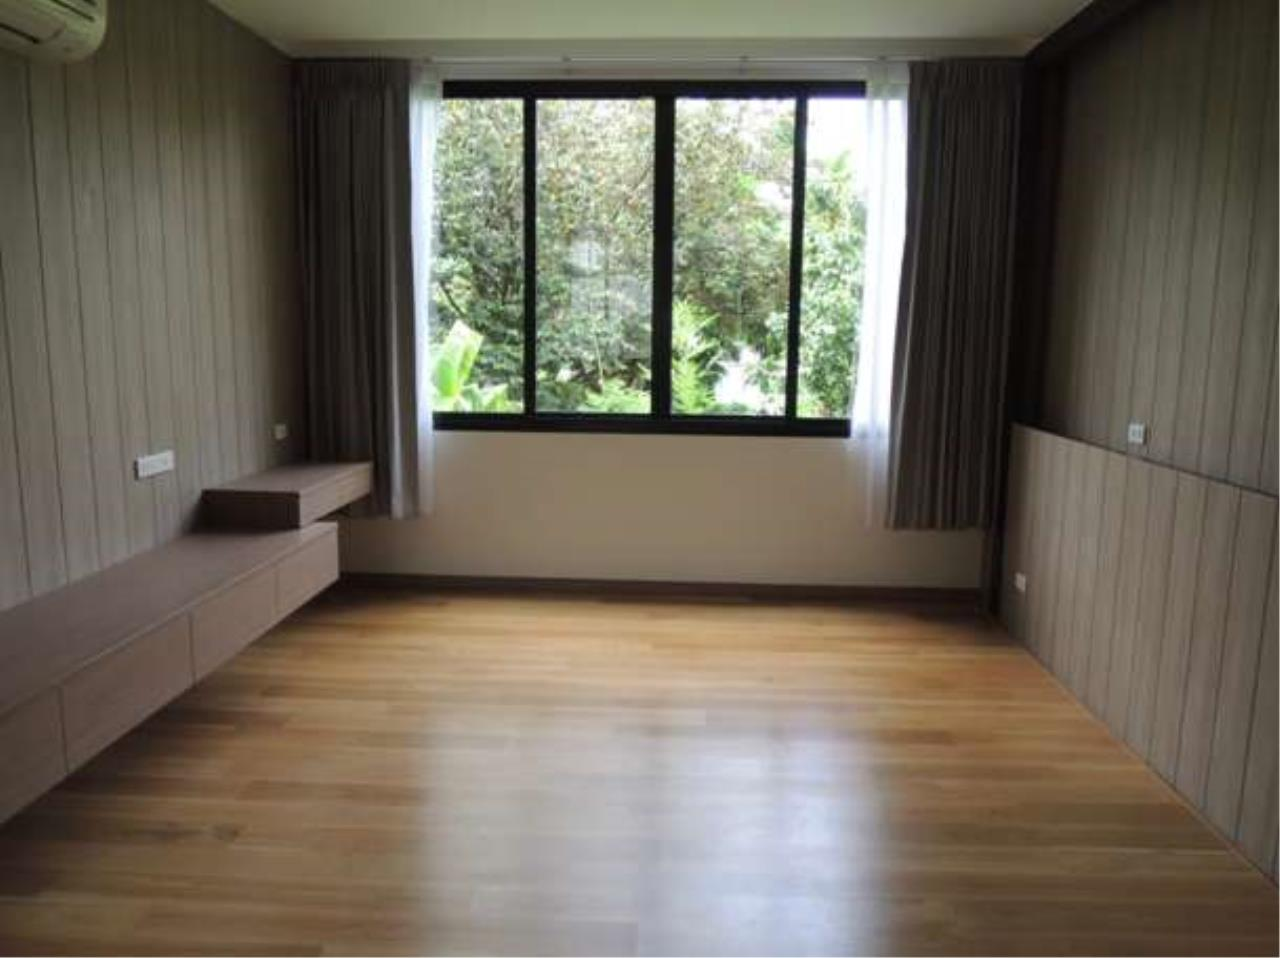 Right Move Thailand Agency's HR423 House For Sale  60,000,000 THB  - 4 Bedrooms - 315 sqm. 10